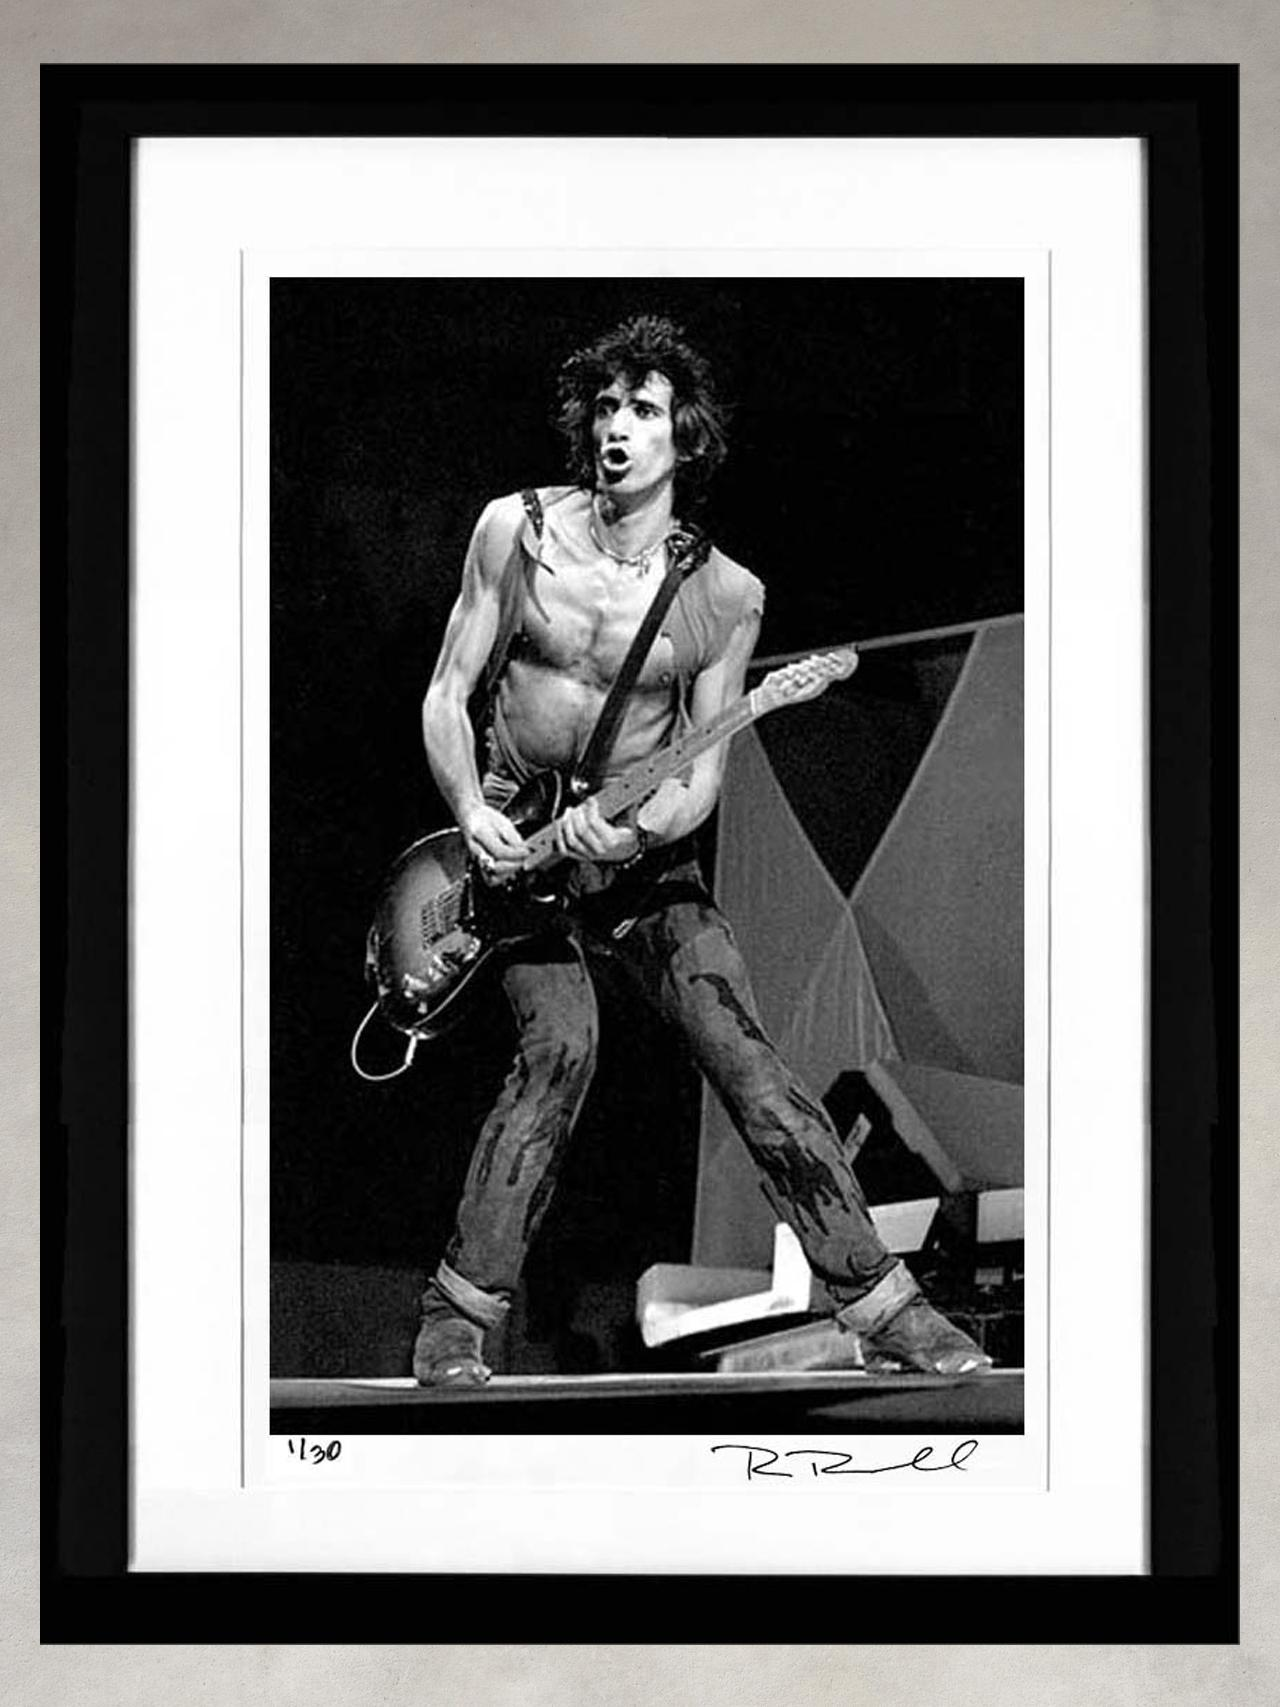 Keith Richards by Ron Pownall